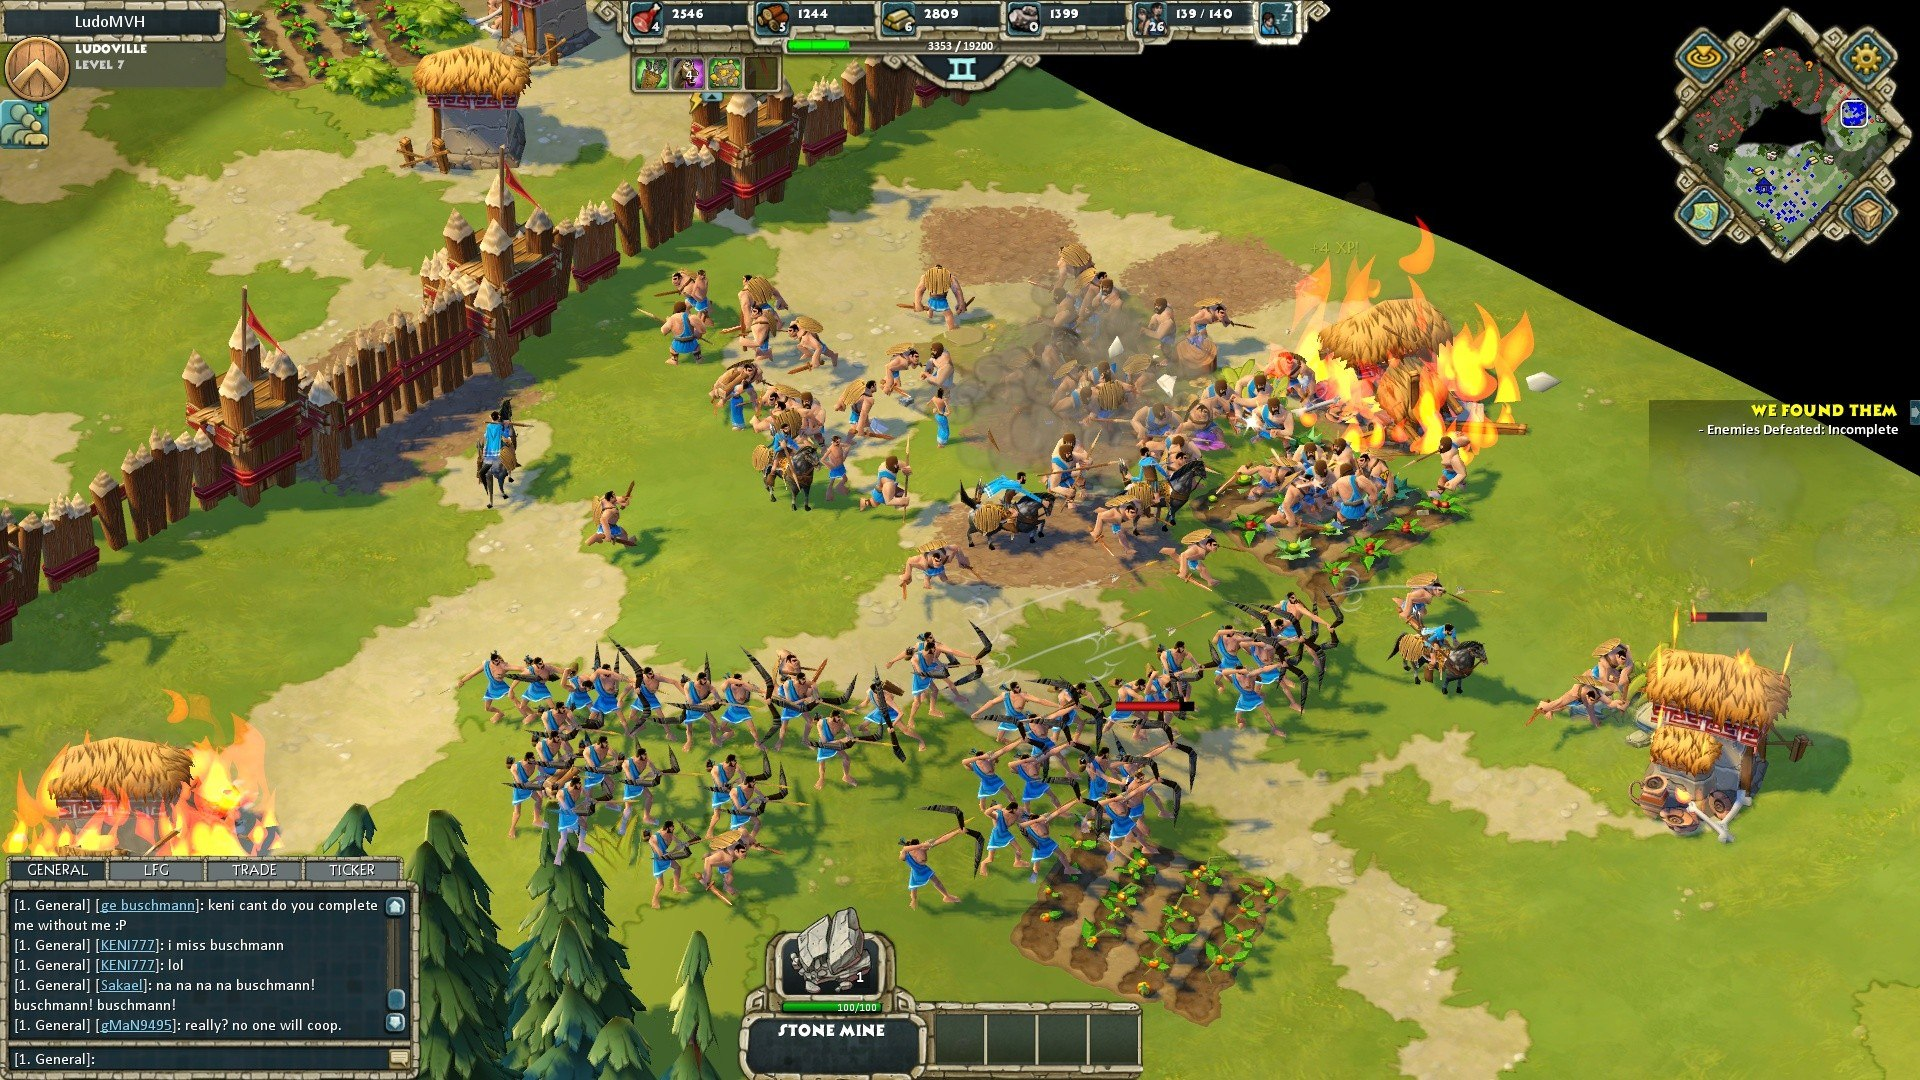 age-of-empires-screen01.jpg